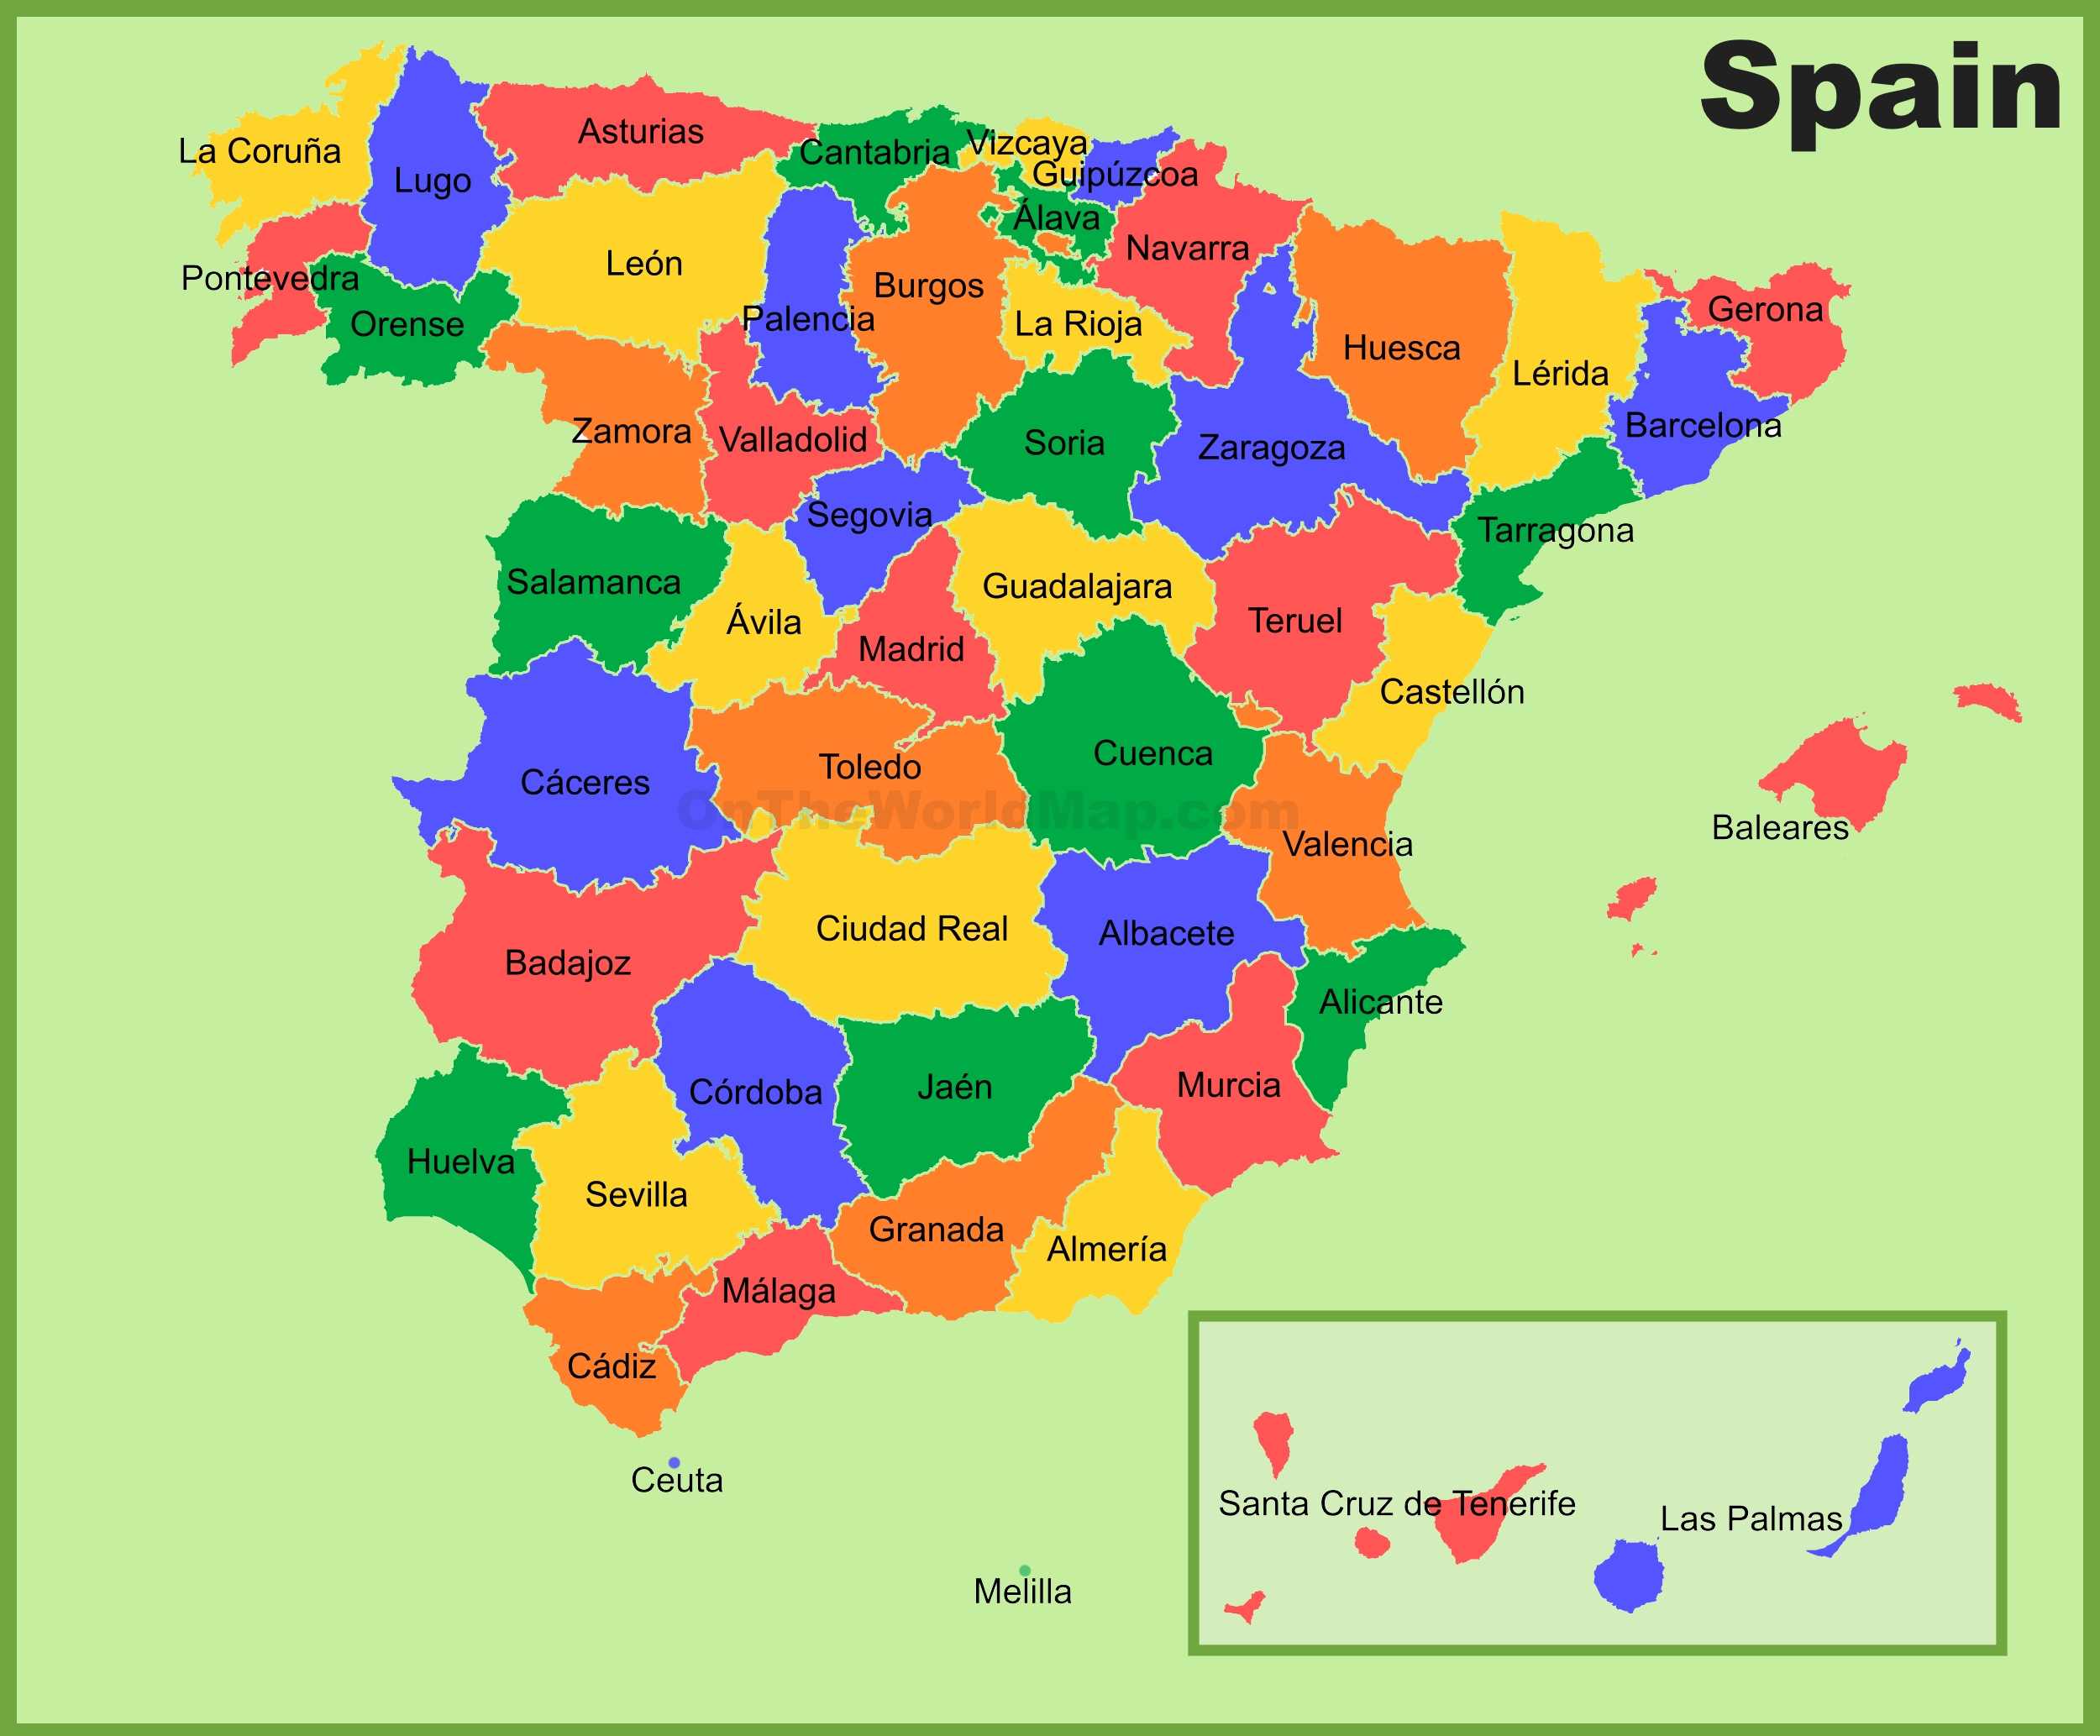 https://ontheworldmap.com/spain/spain-provinces-map.jpg